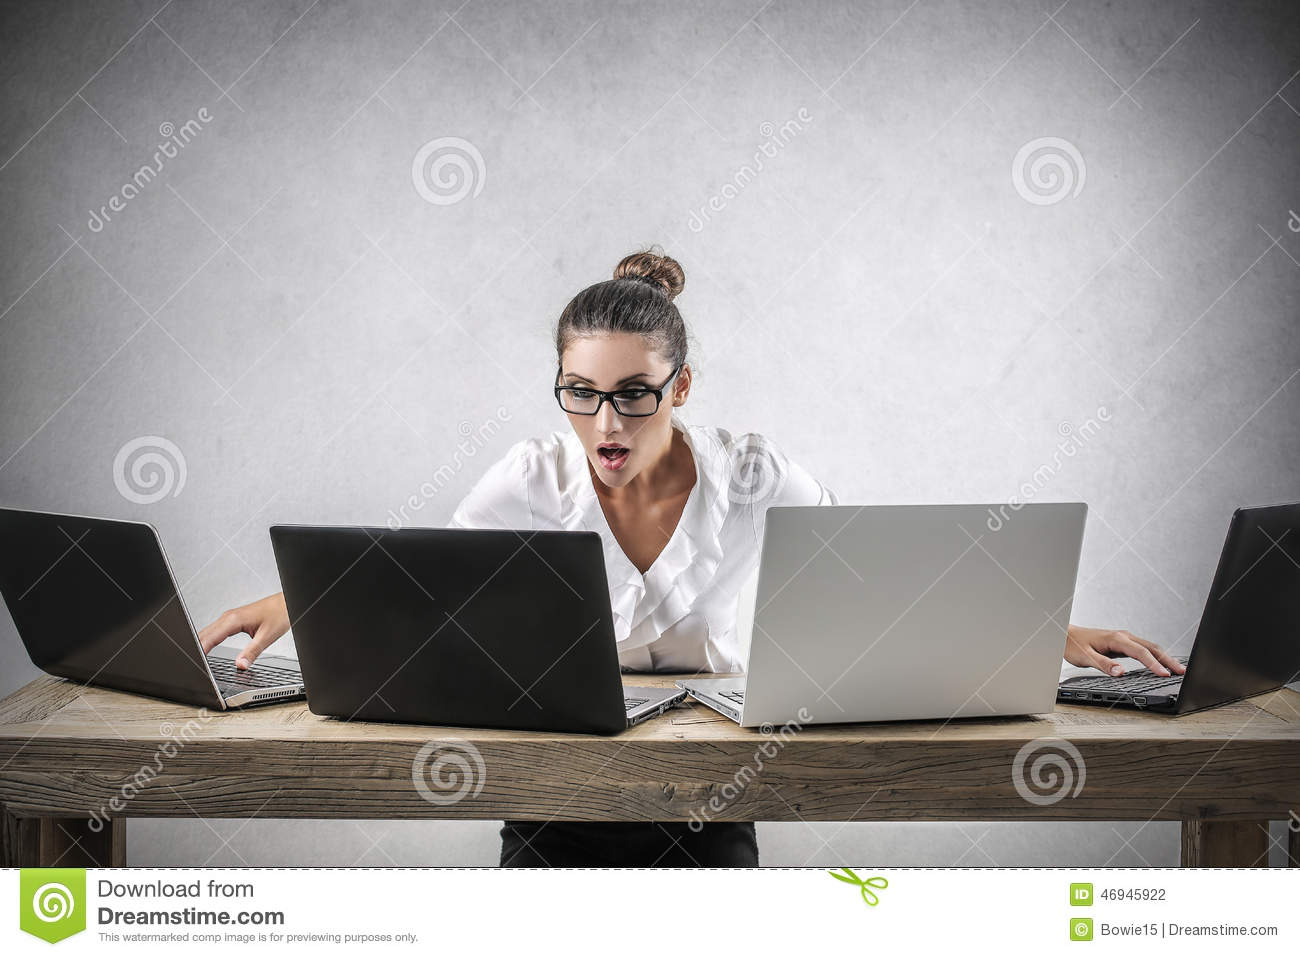 too much work stock photography image  too much work stock photography